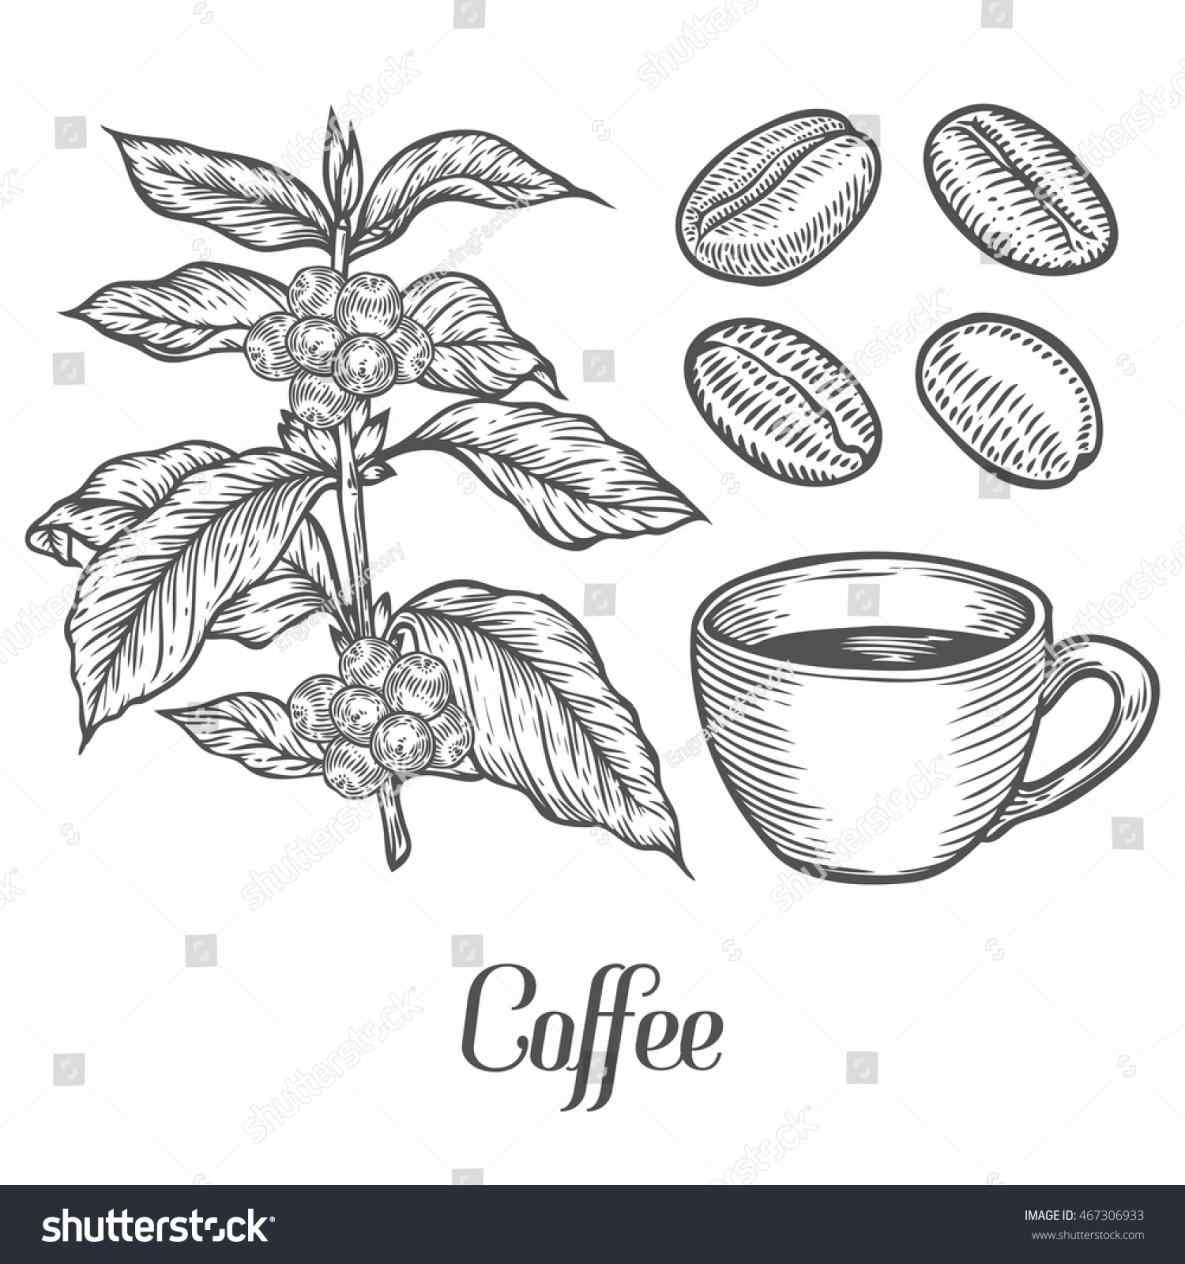 Bean clipart drawing. The images collection of